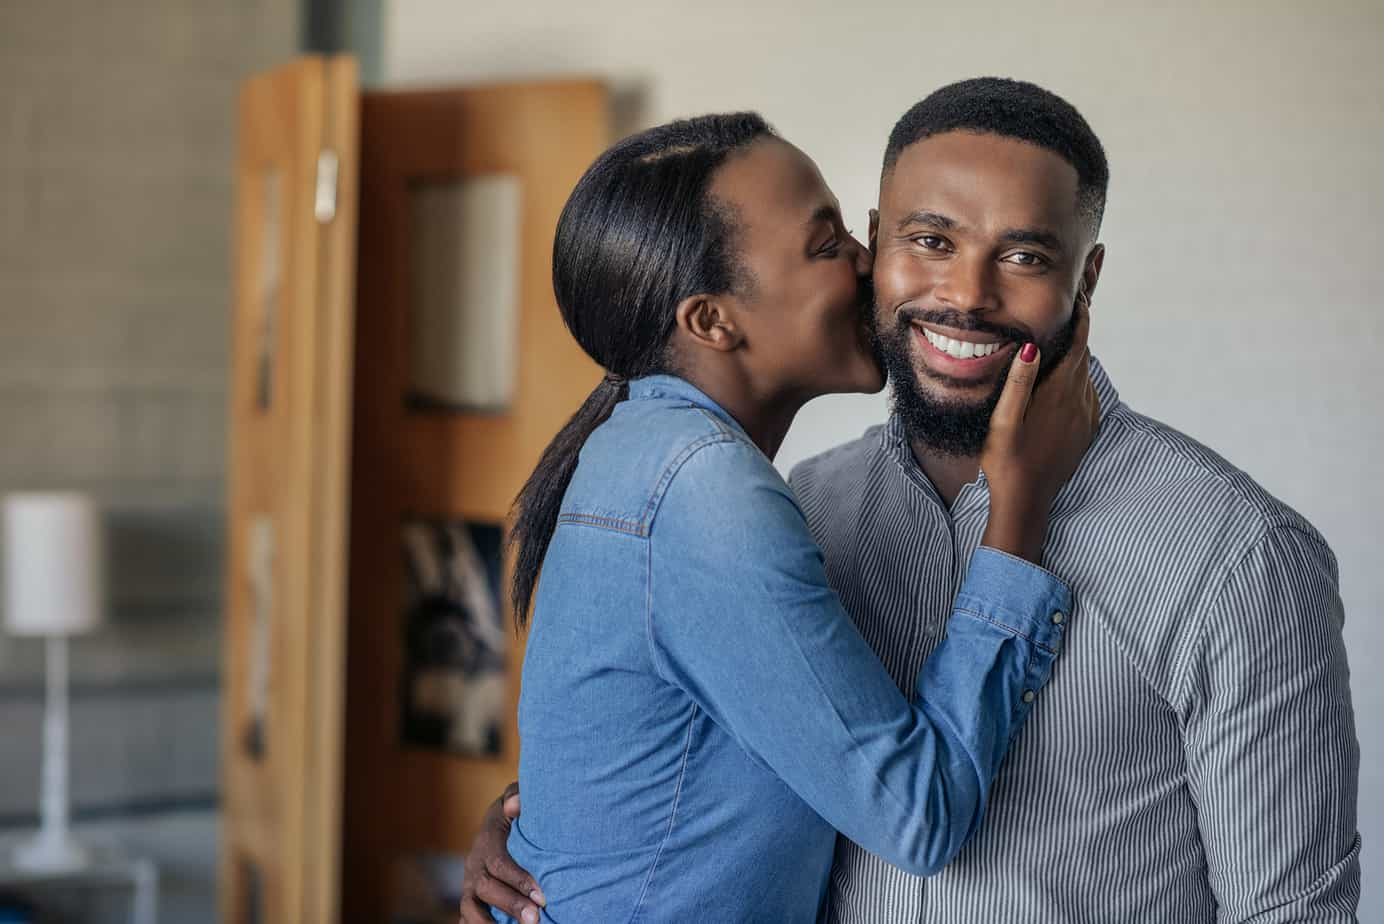 how to be a better wife header image - Affectionate African American wife kissing her husband on the cheek, he is smiling